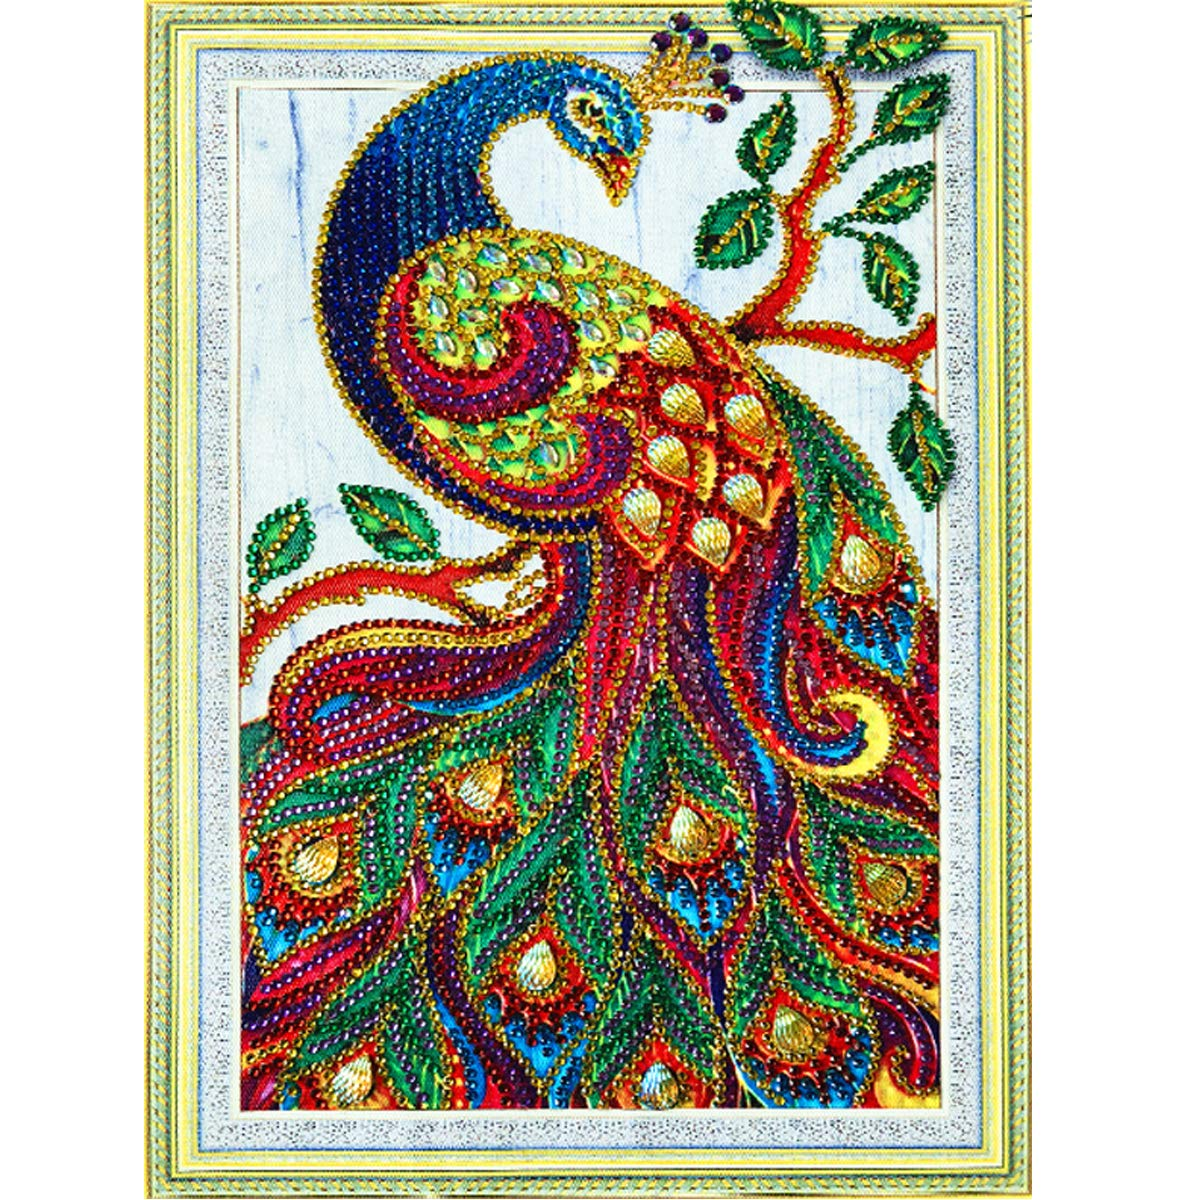 MXJSUA DIY 5D Special Shape Diamond Painting by Number Kit Crystal Rhinestone Round Drill Picture Art Craft Home Wall Decor 12x16In Colored Peacock